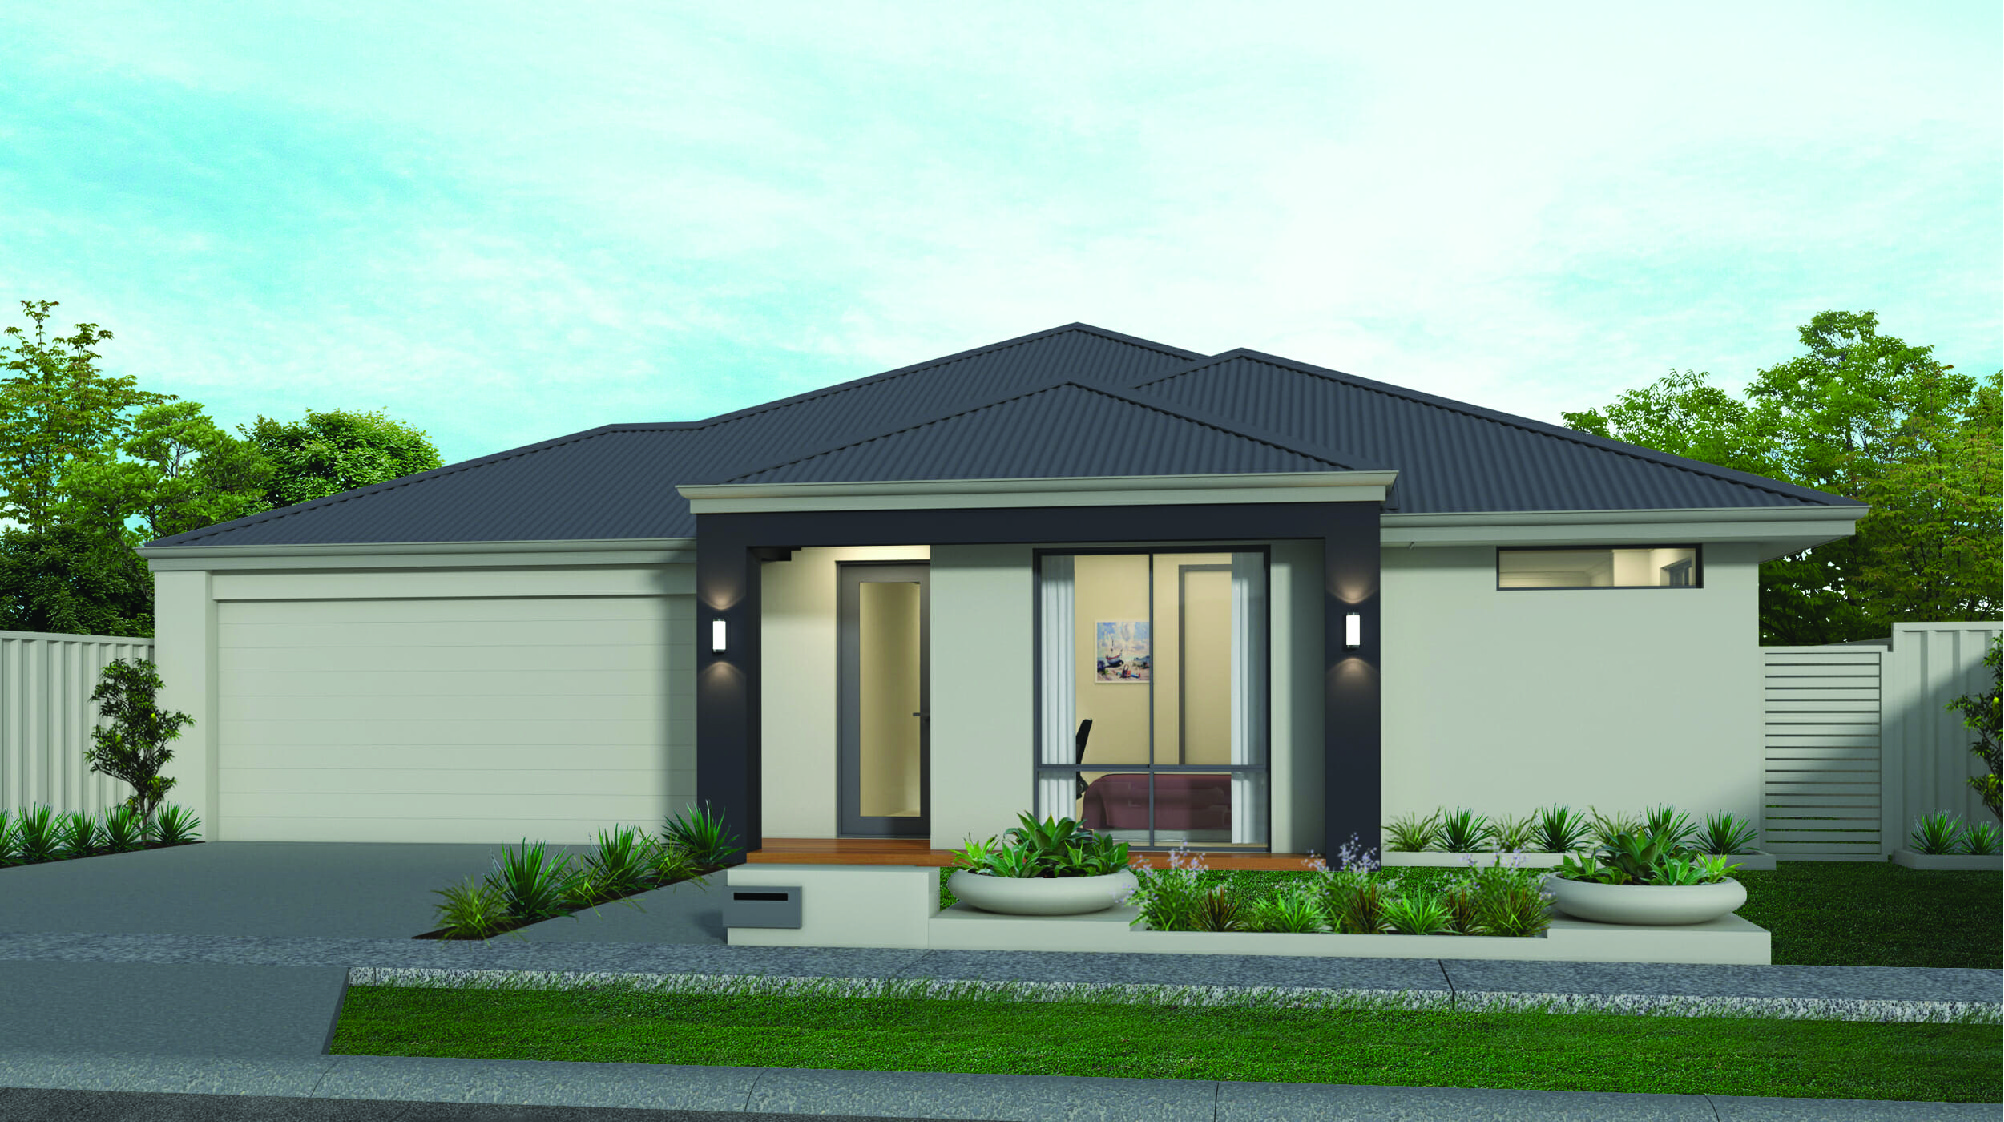 Lot 329 - The Nelson - 101 Residential 2000x1125